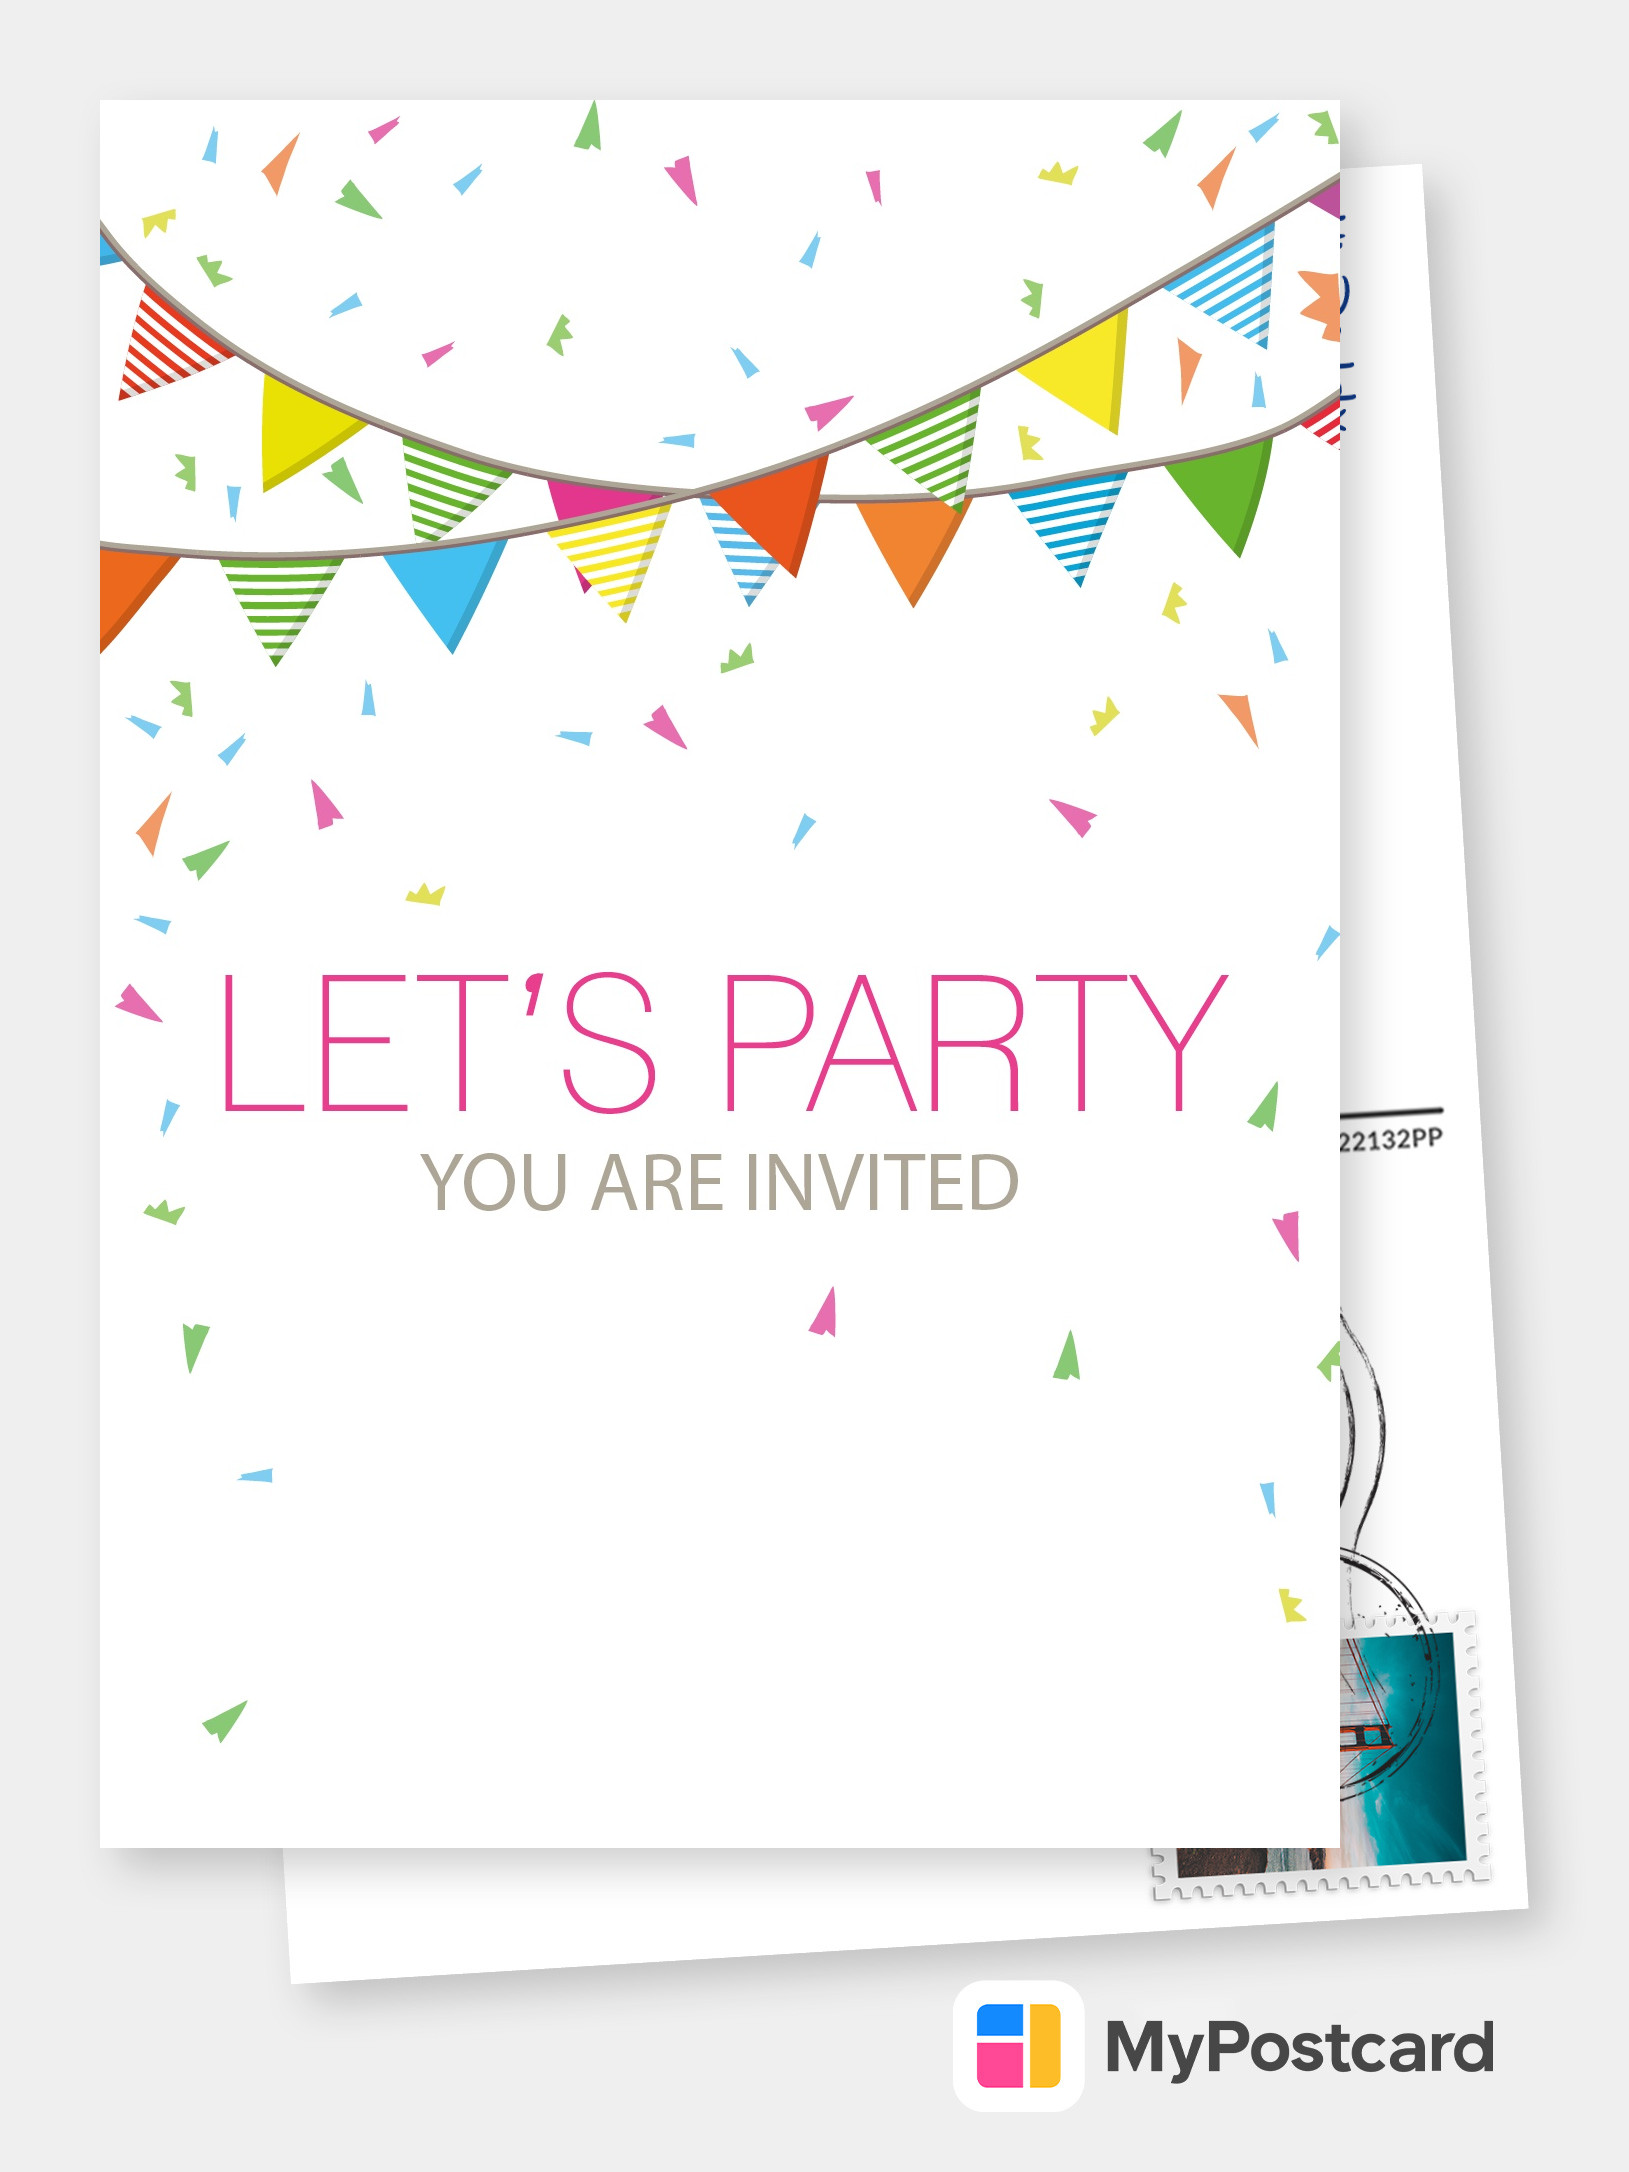 Create Your Own Invitation Cards Online Free Printable Templates Printed Mailed For You International Make Your Own